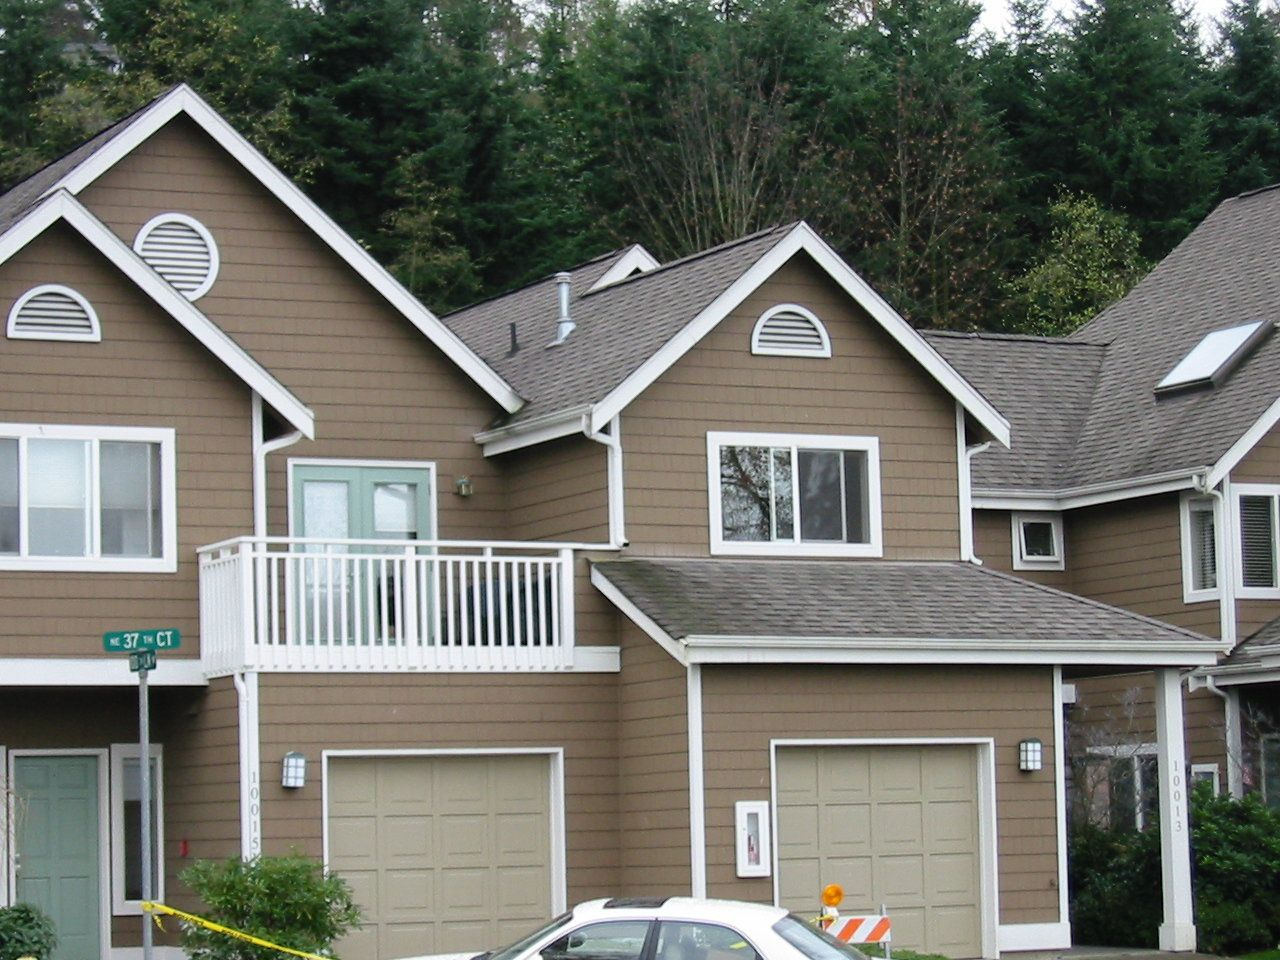 House Paint Otside Exterior Awesome Brown House Exterior Paint Idea With Balcony With Exterior Paint Colors For House House Paint Exterior House Exterior